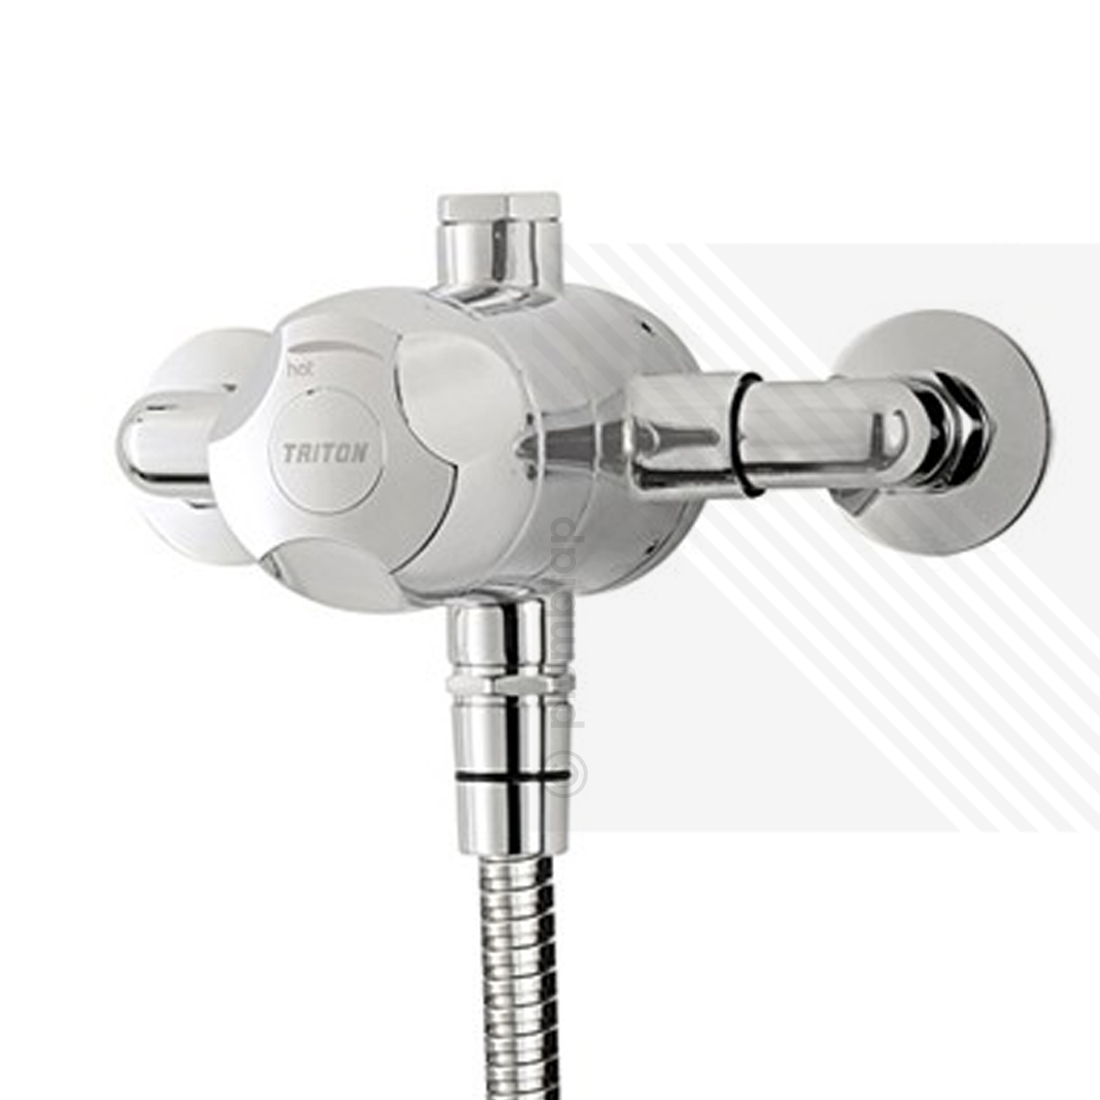 Triton Dove Sequential Exposed Thermostatic Shower Mixer Valve With Handset Riser Rail Soap Dish